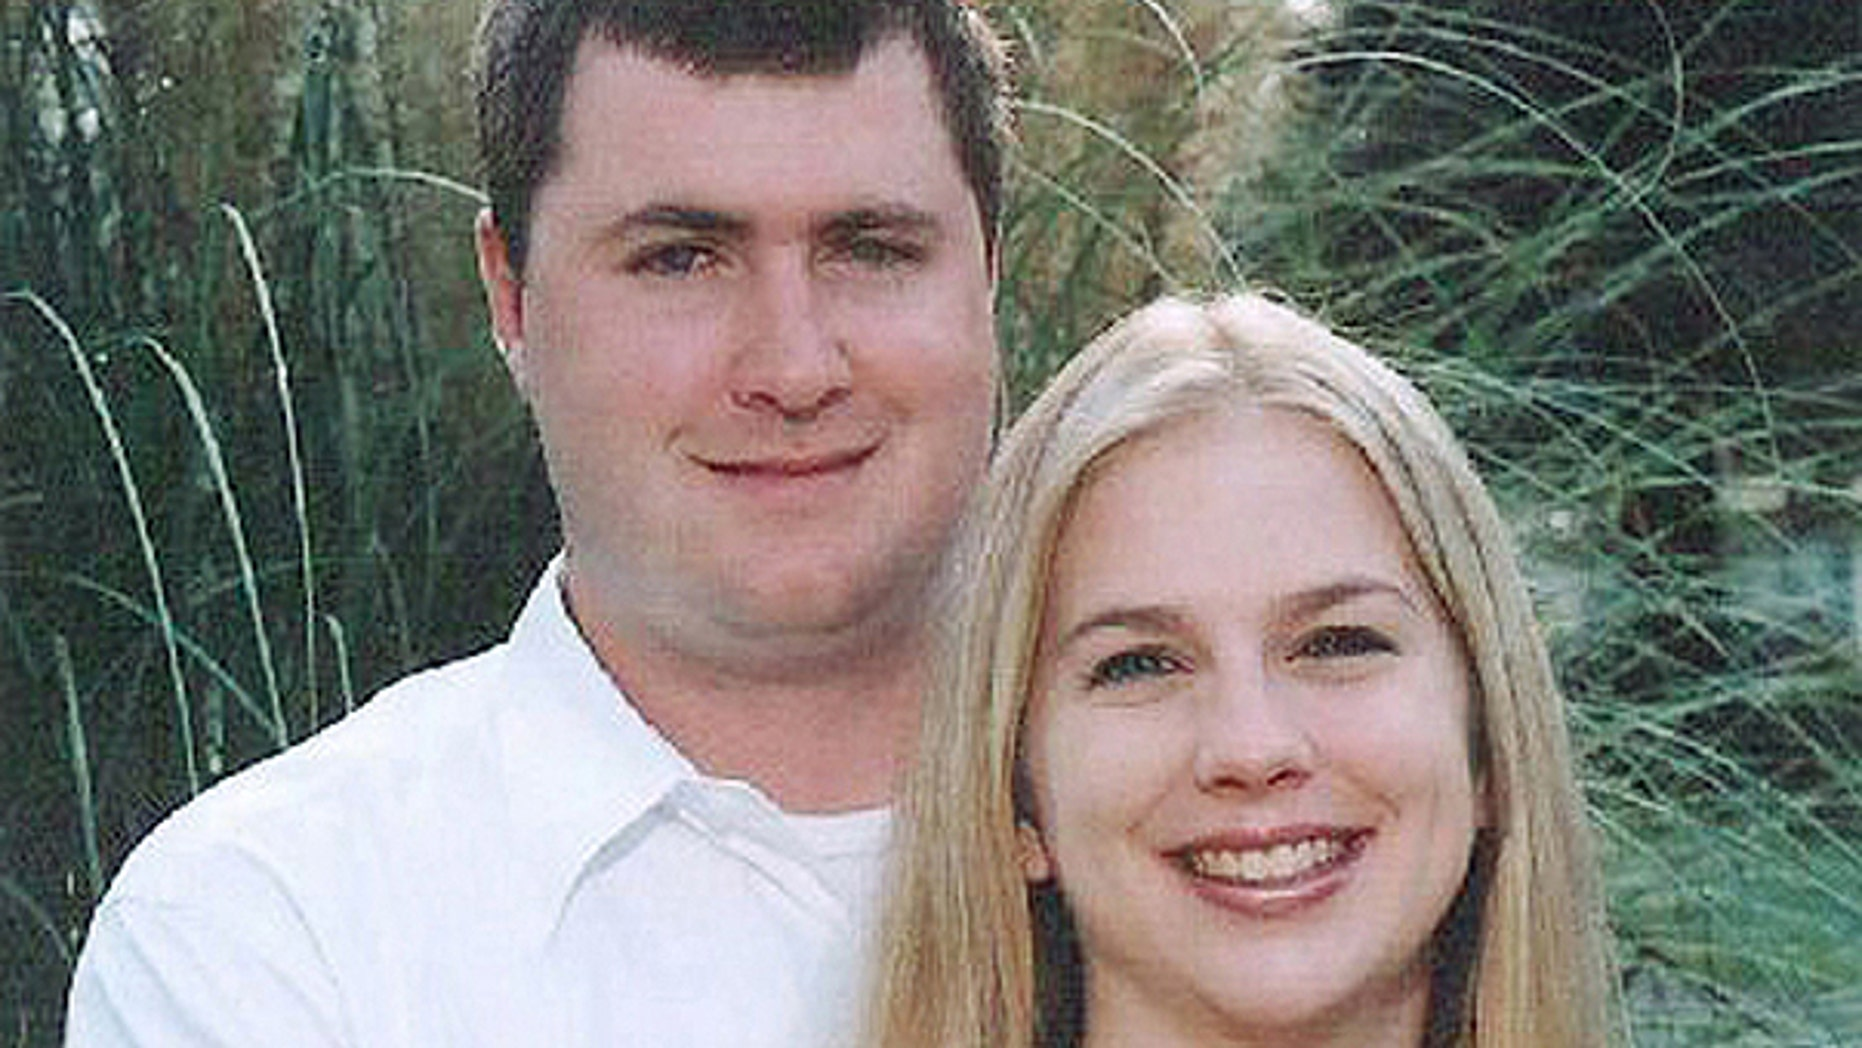 June 20, 2008: Gabe Watson, left, and his wife, Tina, pose on their engagement.